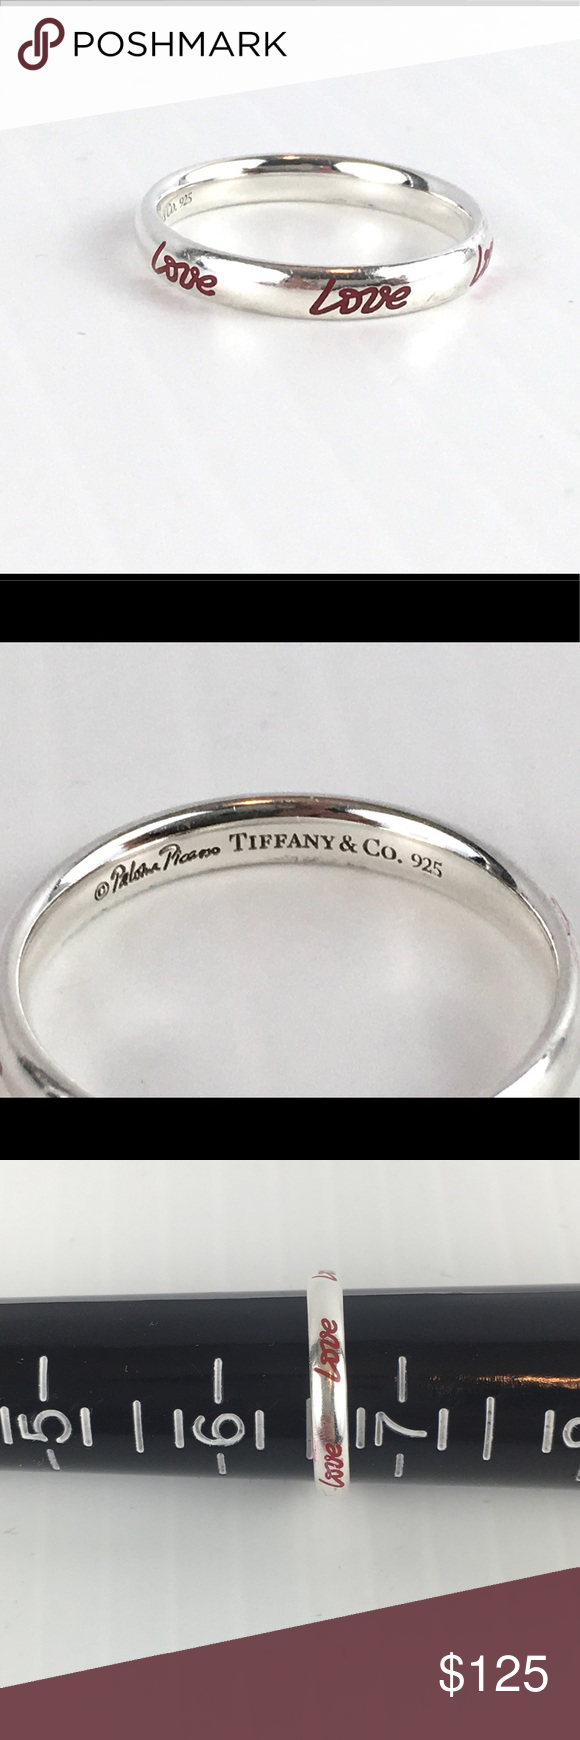 Tiffany silver 925 ring paloma picasso tiffany picasso red graffiti love ring good condition size 6 5